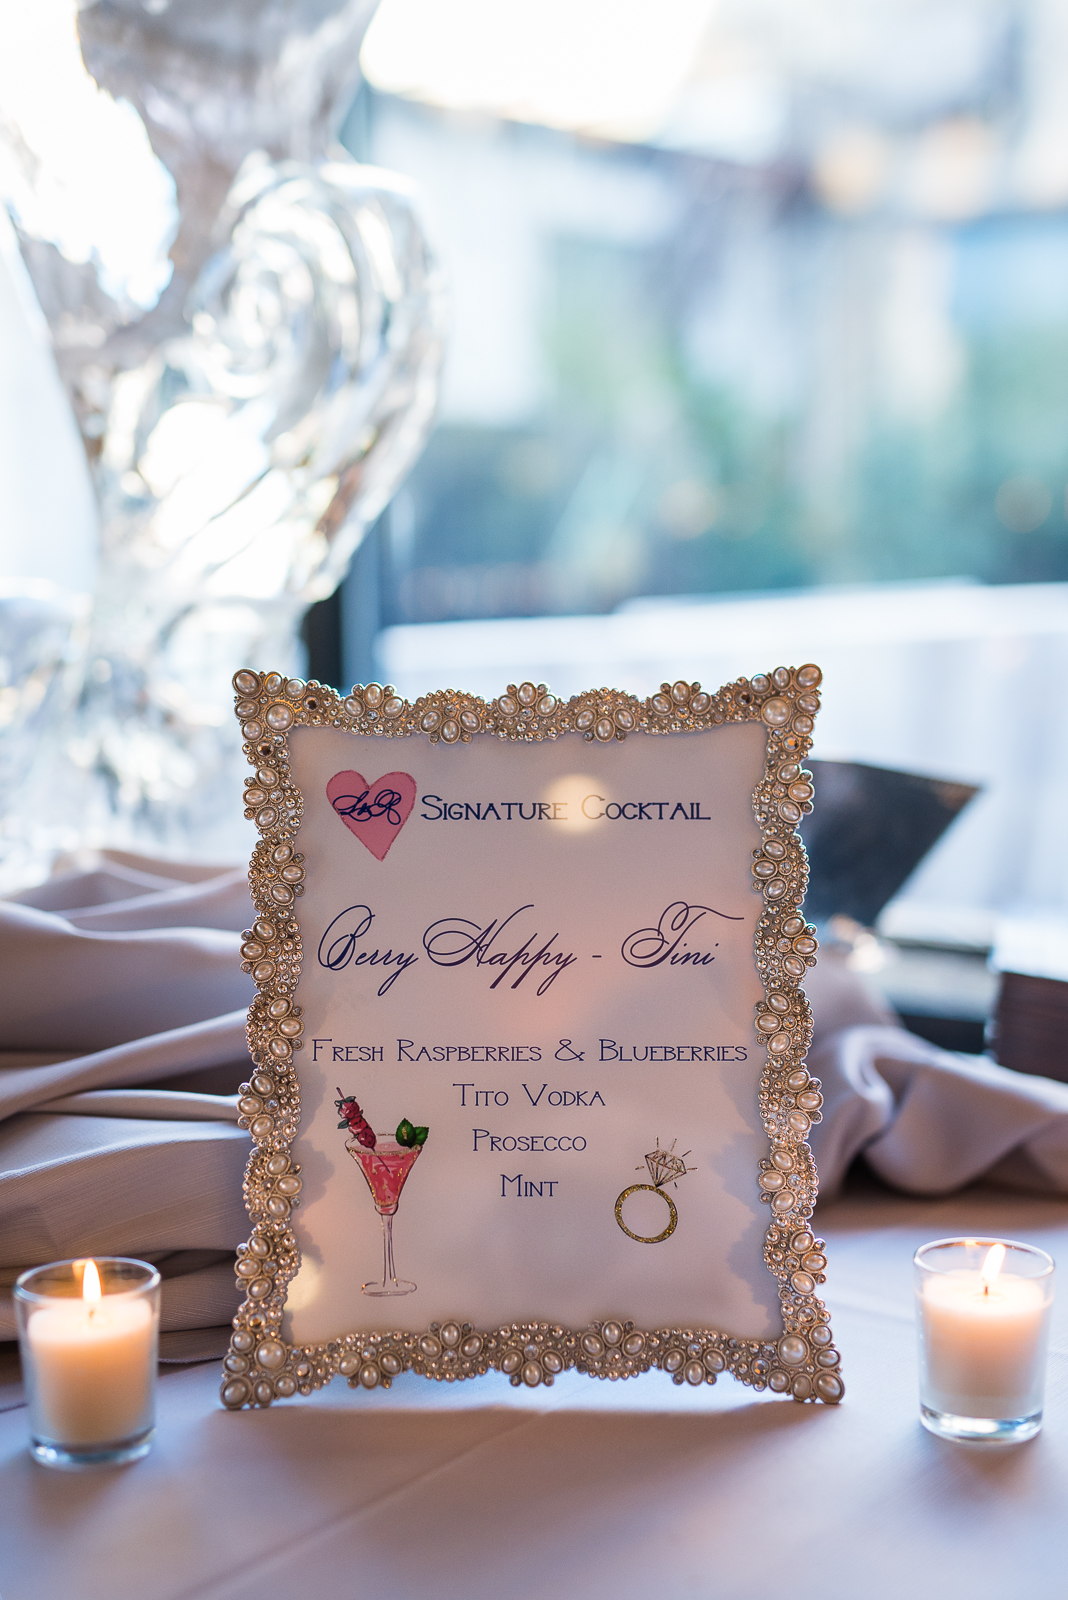 Regal Hometown Engagement Party - Christina Currie Events, Inc.